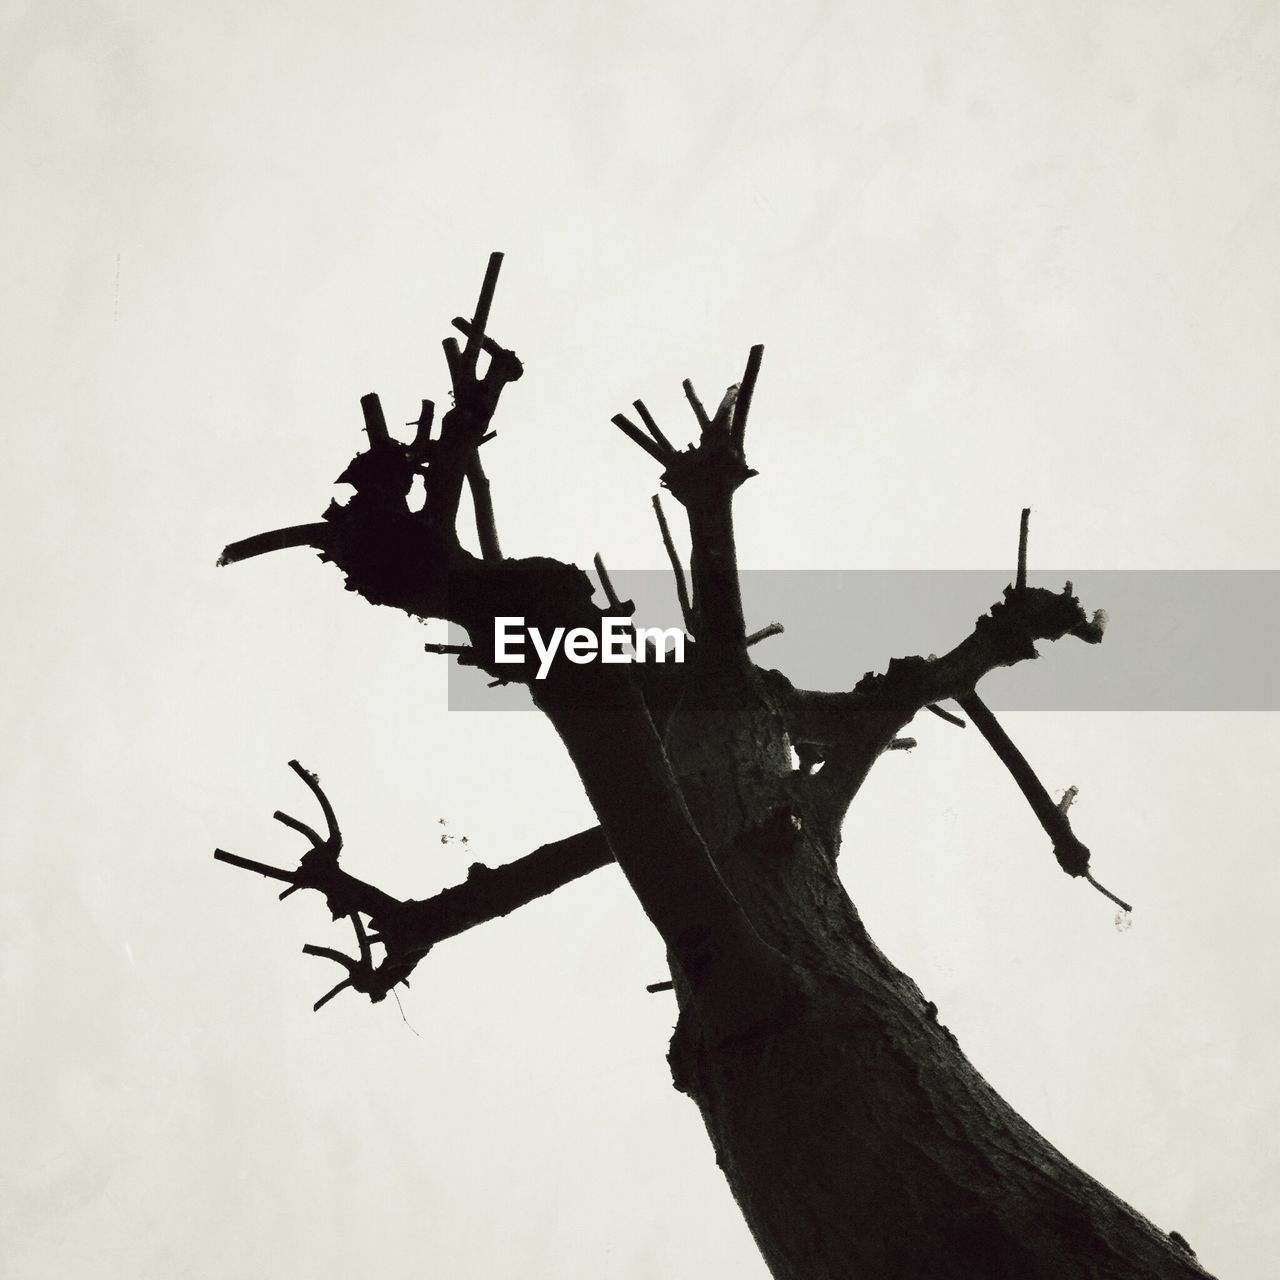 silhouette, no people, branch, low angle view, outdoors, nature, clear sky, dead tree, tree, day, white background, sky, close-up, animal themes